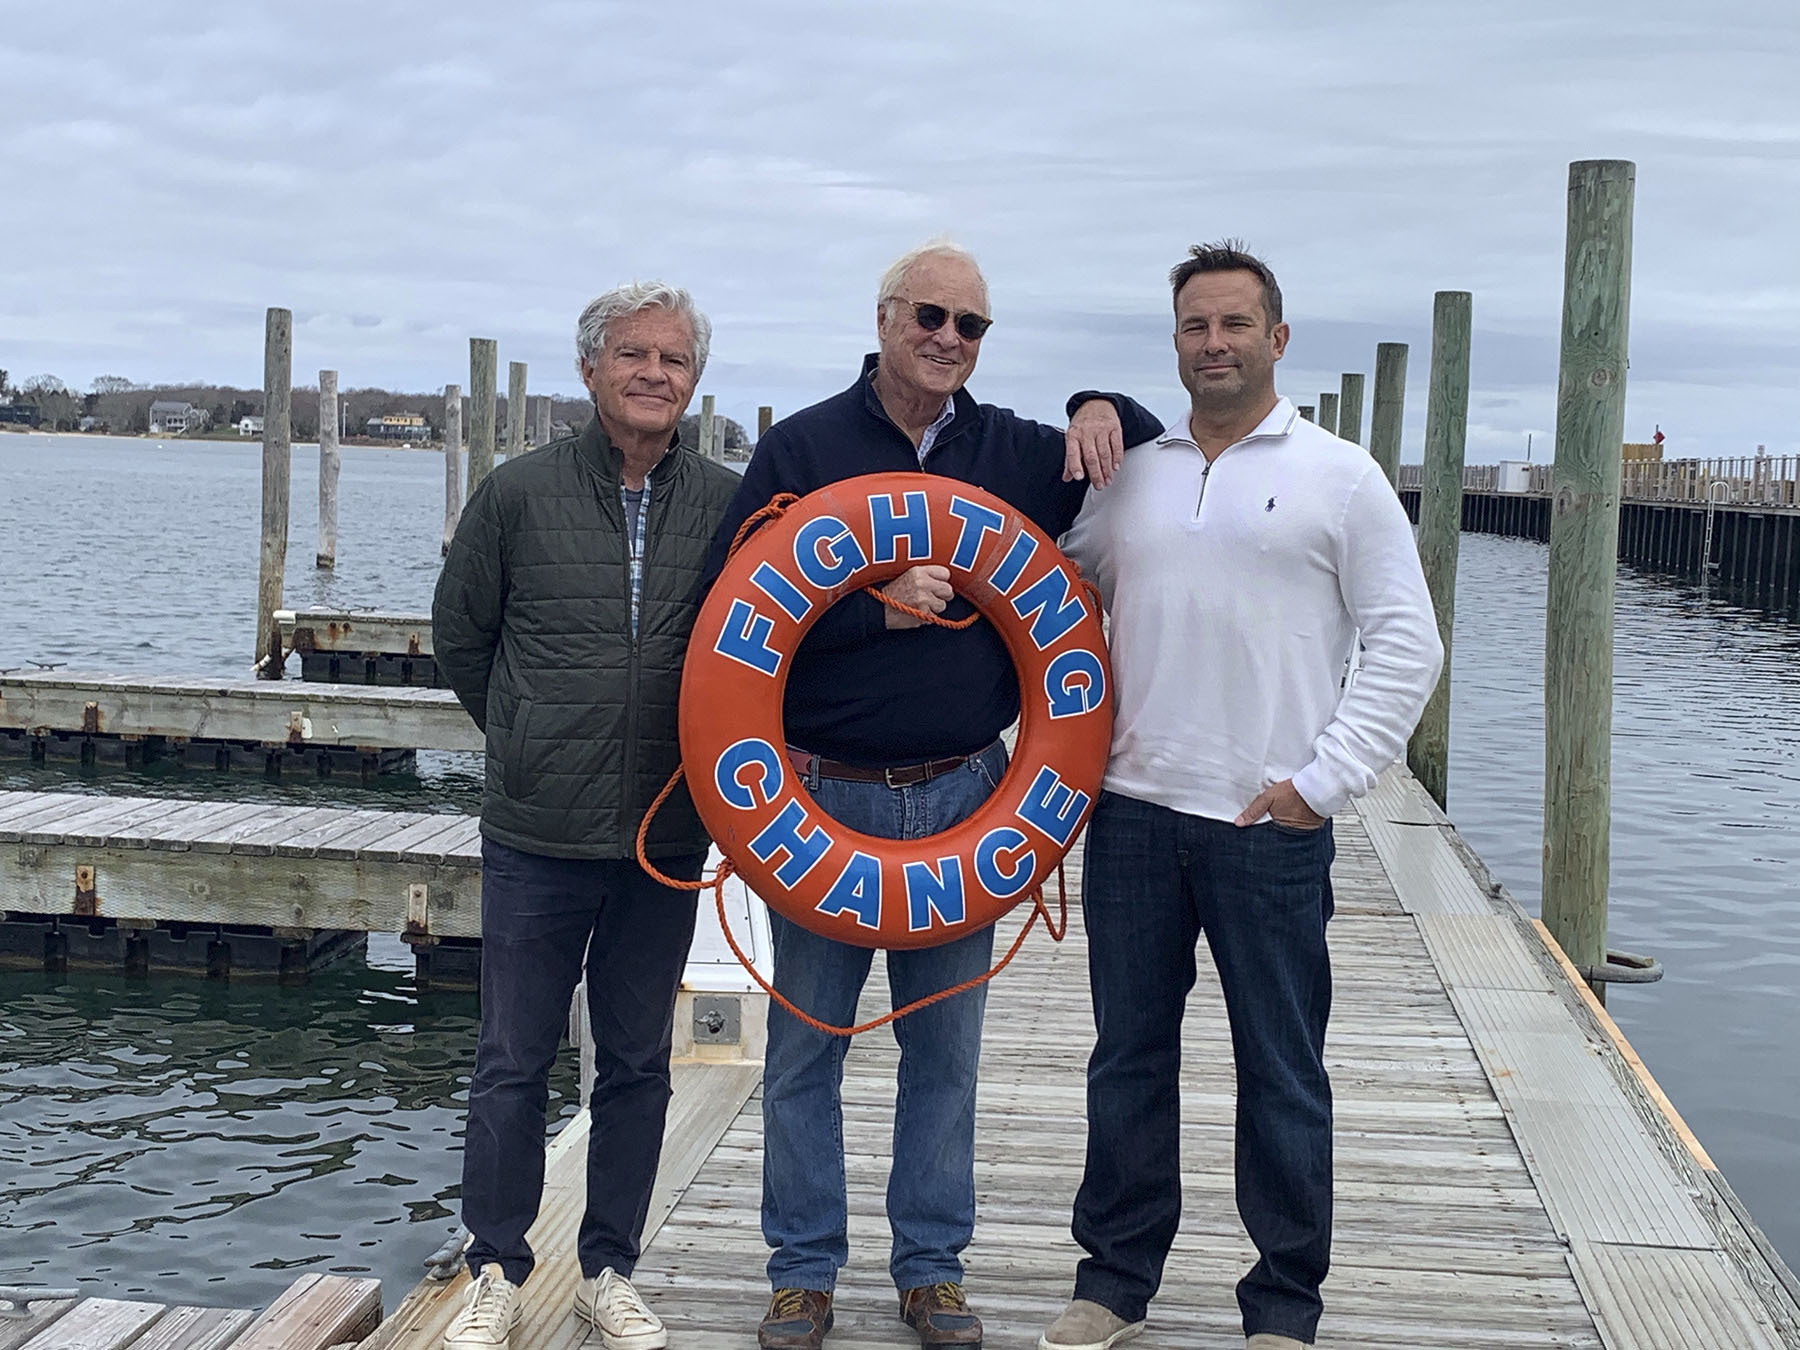 Leaders of the Boaters Against Cancer fundraiser, Village Trustee James Larocca, Fighting Chance founder Duncan Darrow, and lead sponsor Joe Ialacci. NANCY GREENBERG